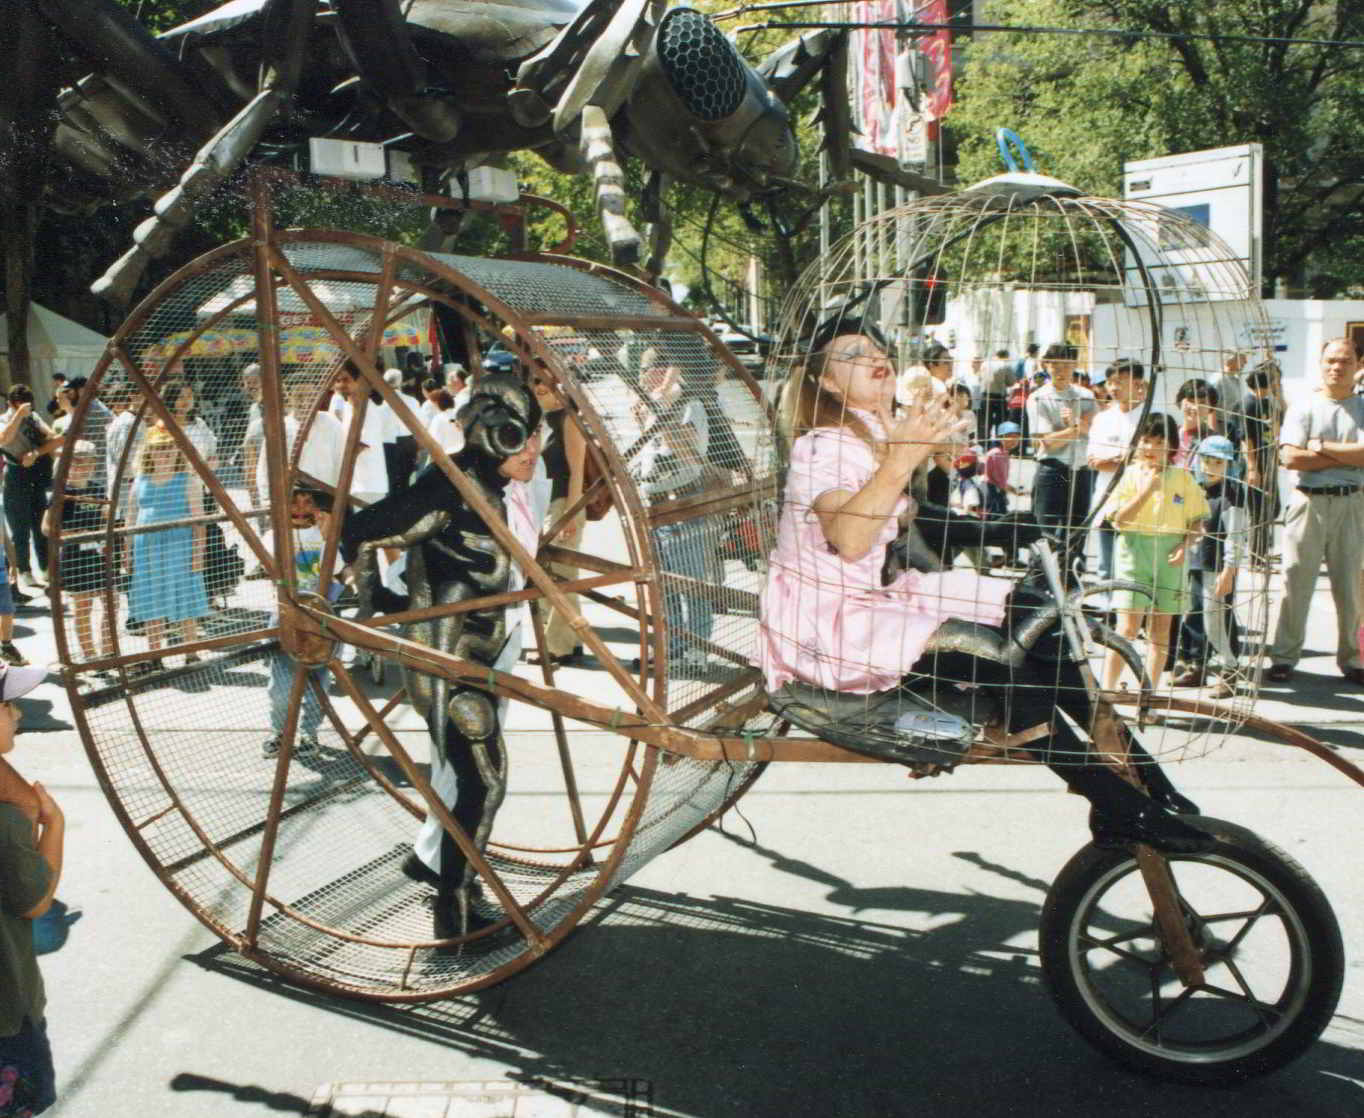 Road Roach side view of parade contraption showing wheel and first cage